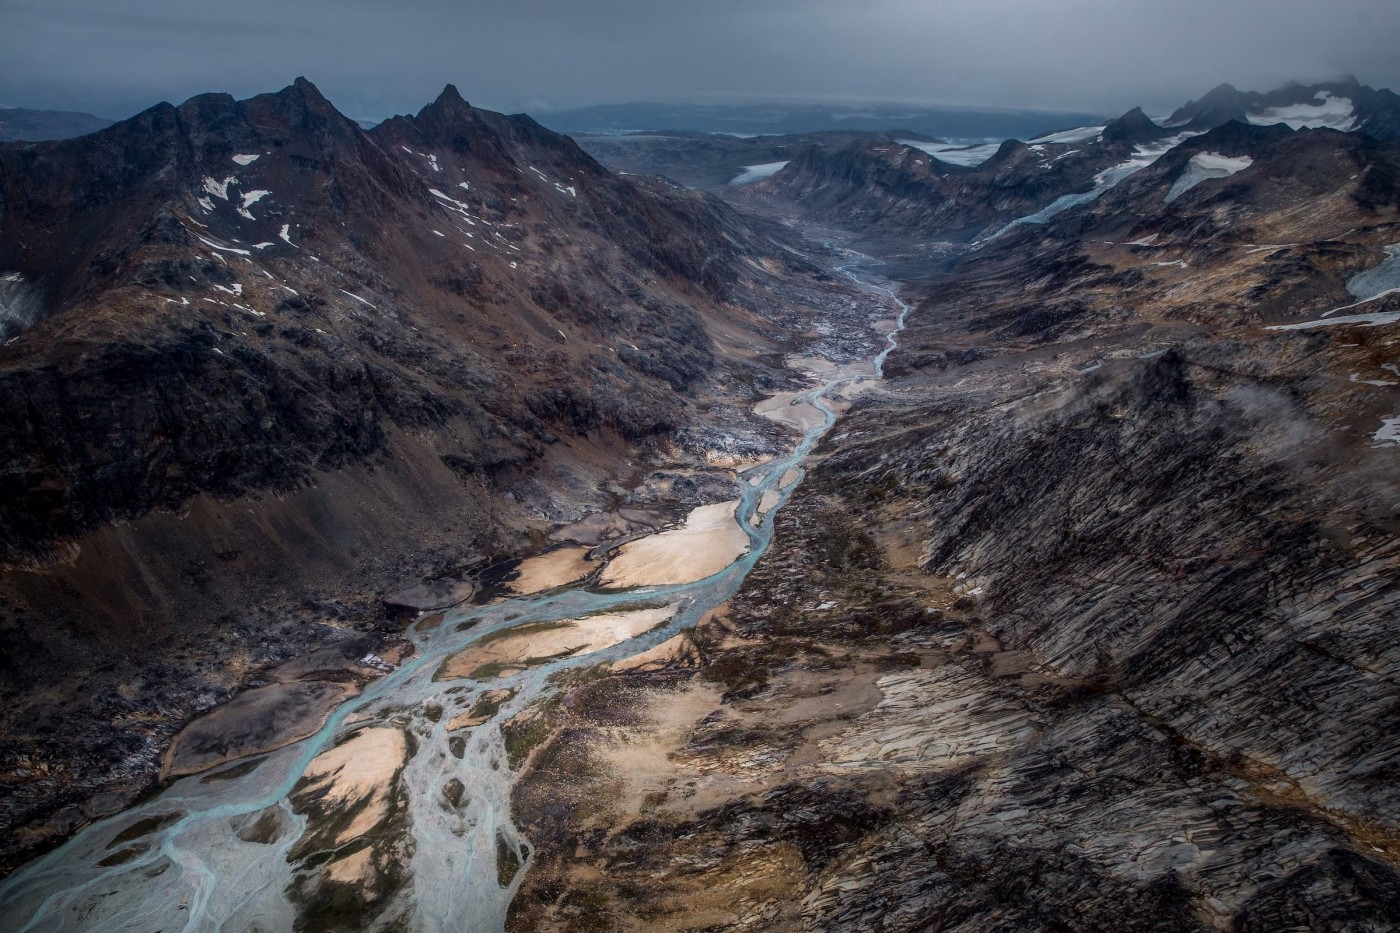 A river valley draining a glacier near Tasiilaq in East Greenland. Photo by Mads Pihl - Visit Greenland